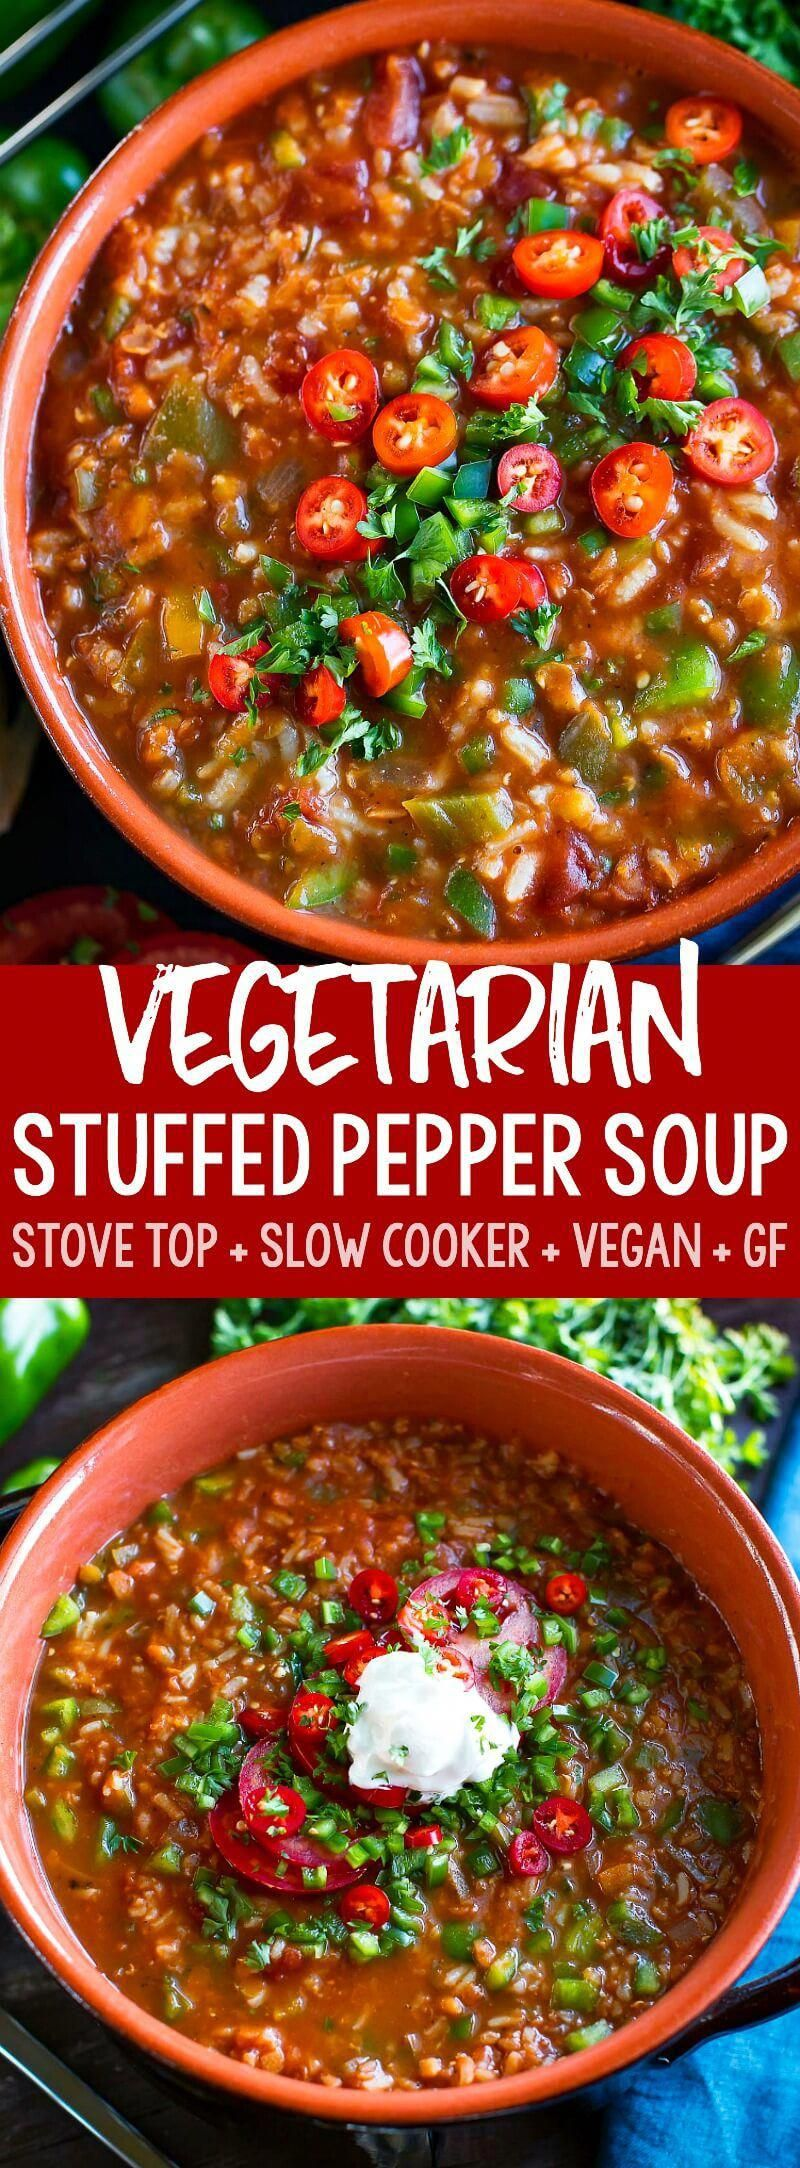 This tasty Vegetarian Stuffed Pepper Soup has both stove top and slow cooker instructions Full of flavor and loaded with vegetables this chunky veggie and rice soup is